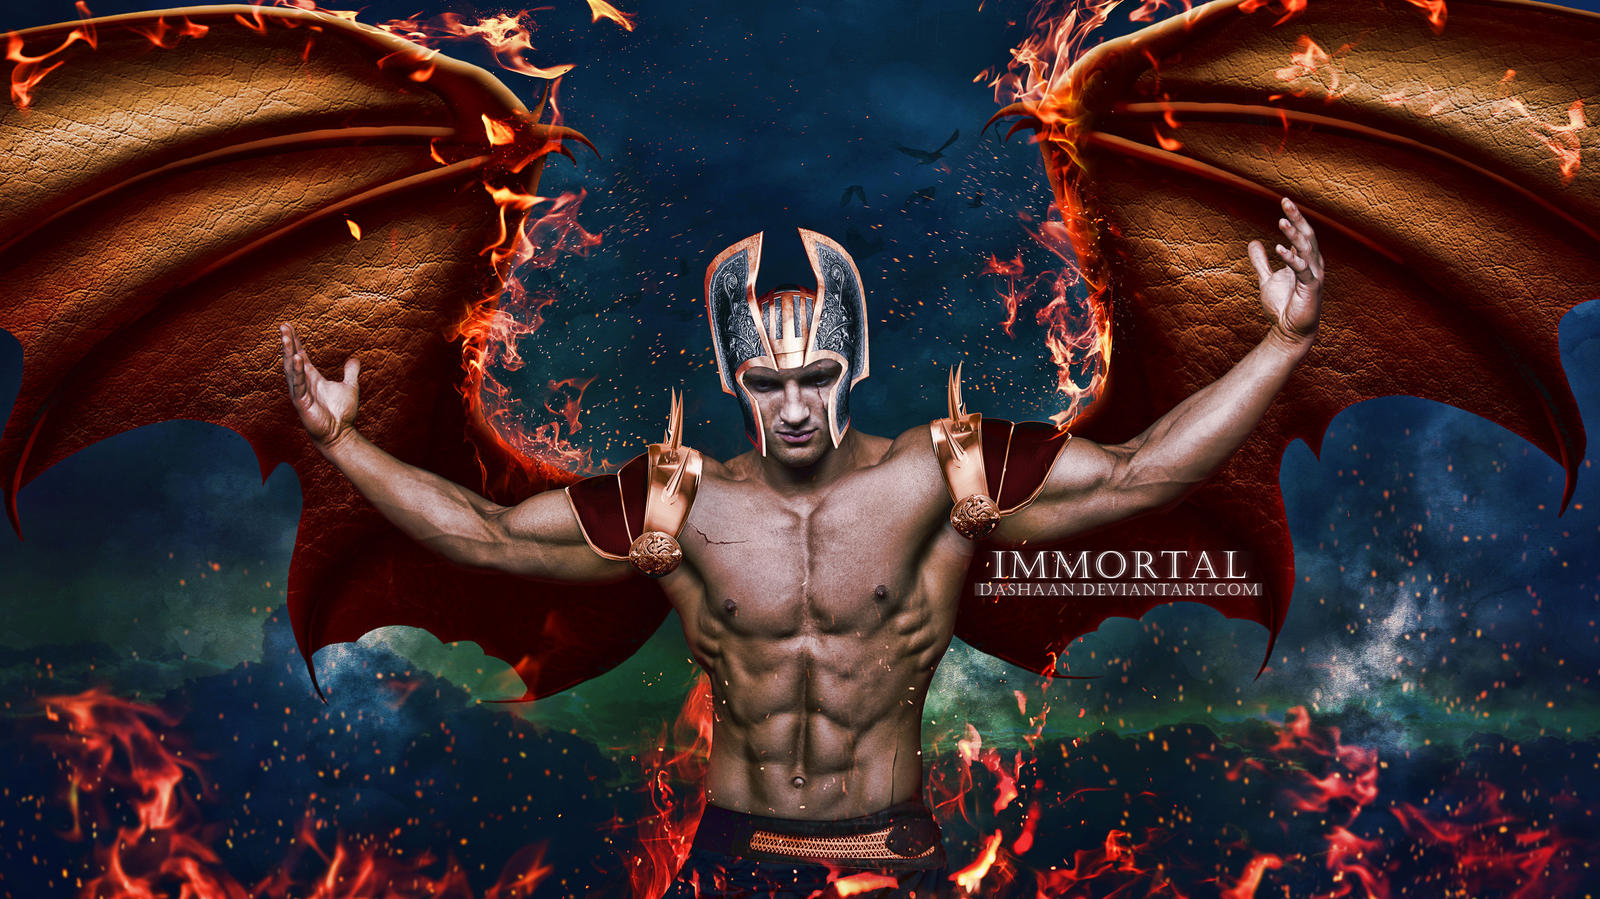 Immortal by DaShaan